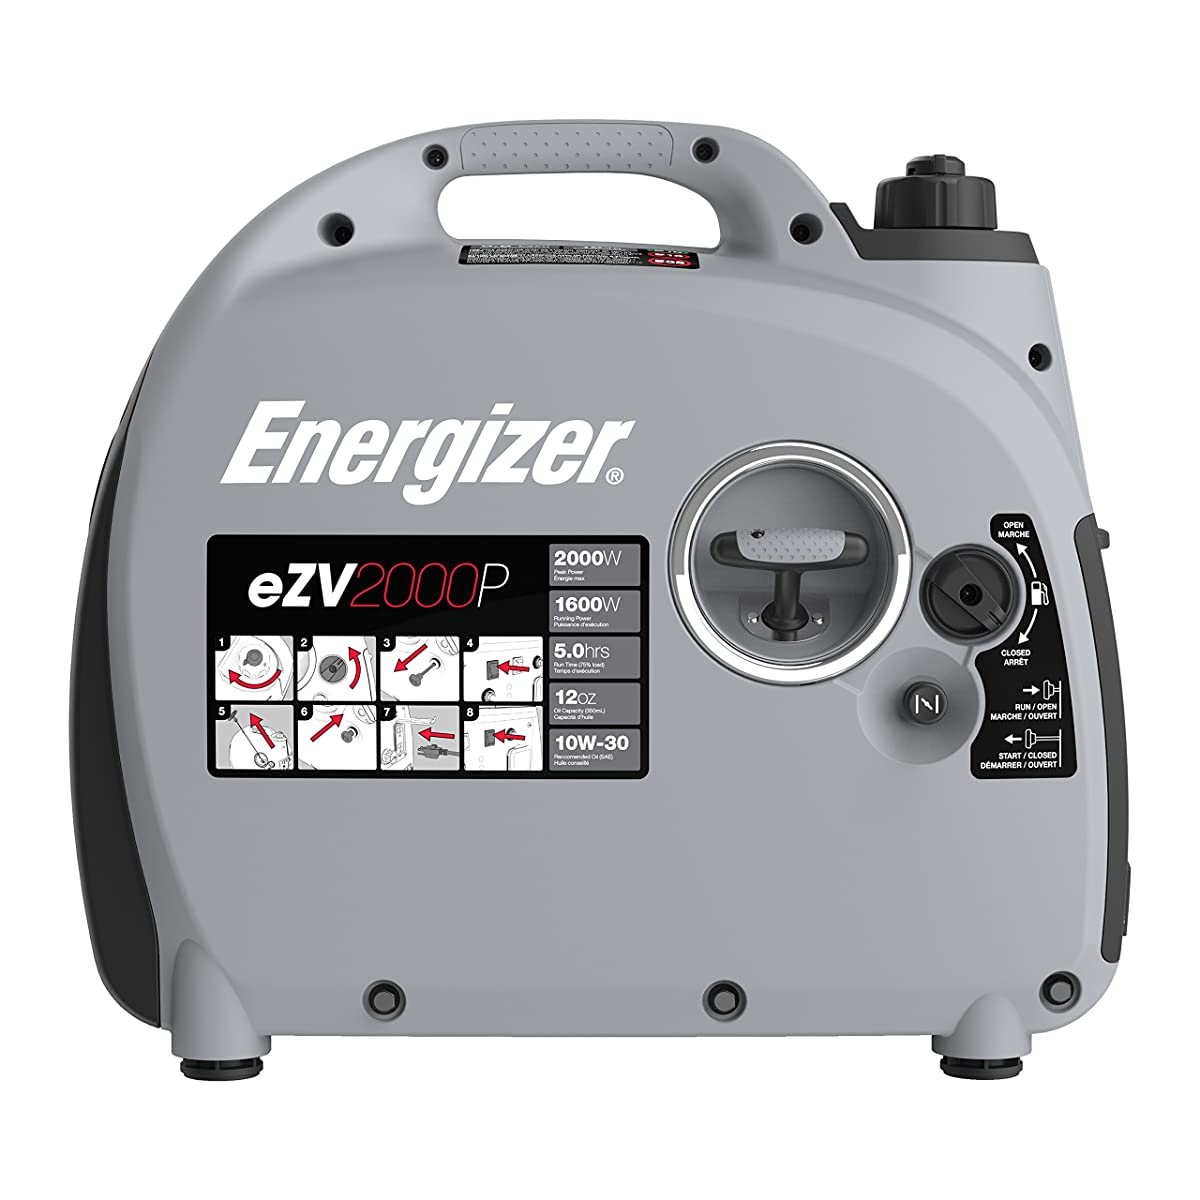 Energizer eZV2000P 2000W Gas Powered Portable Inverter Generator with Parallel Capability, Grey Black